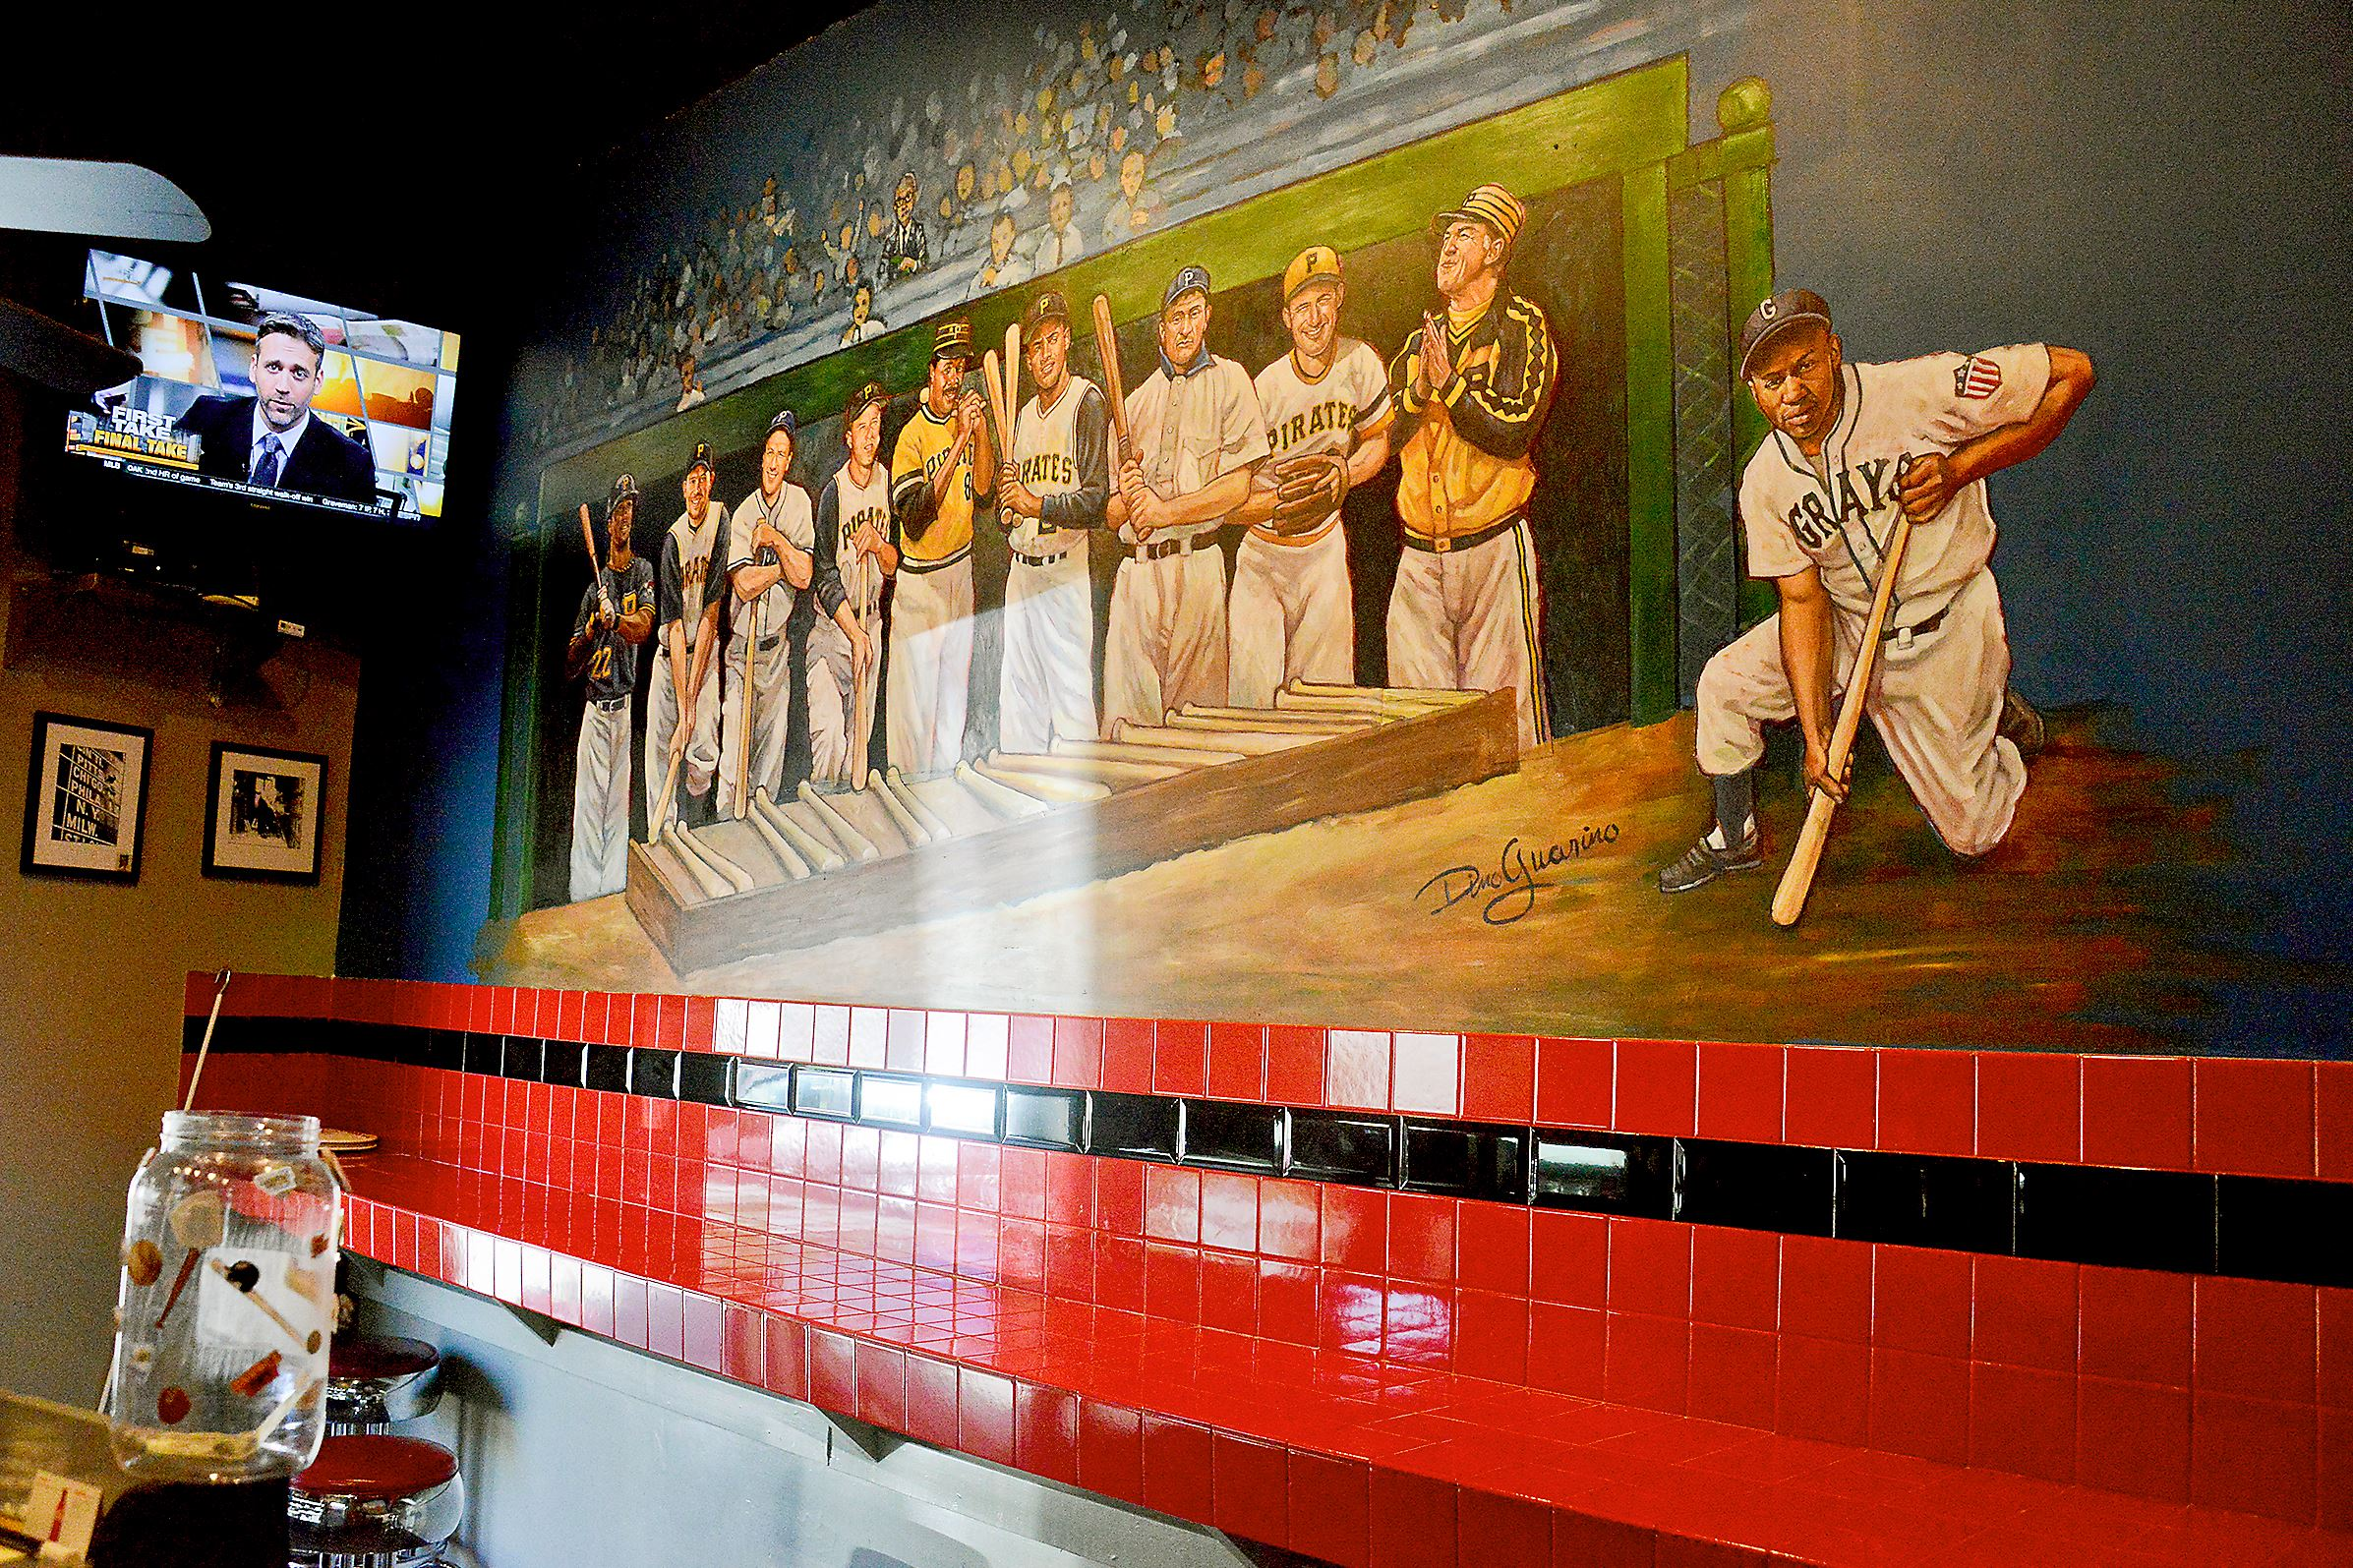 20170509lf-Deli01 The interior of Dugout Deli in Mount Washington features a mural of Pittsburgh baseball hall of fame players.